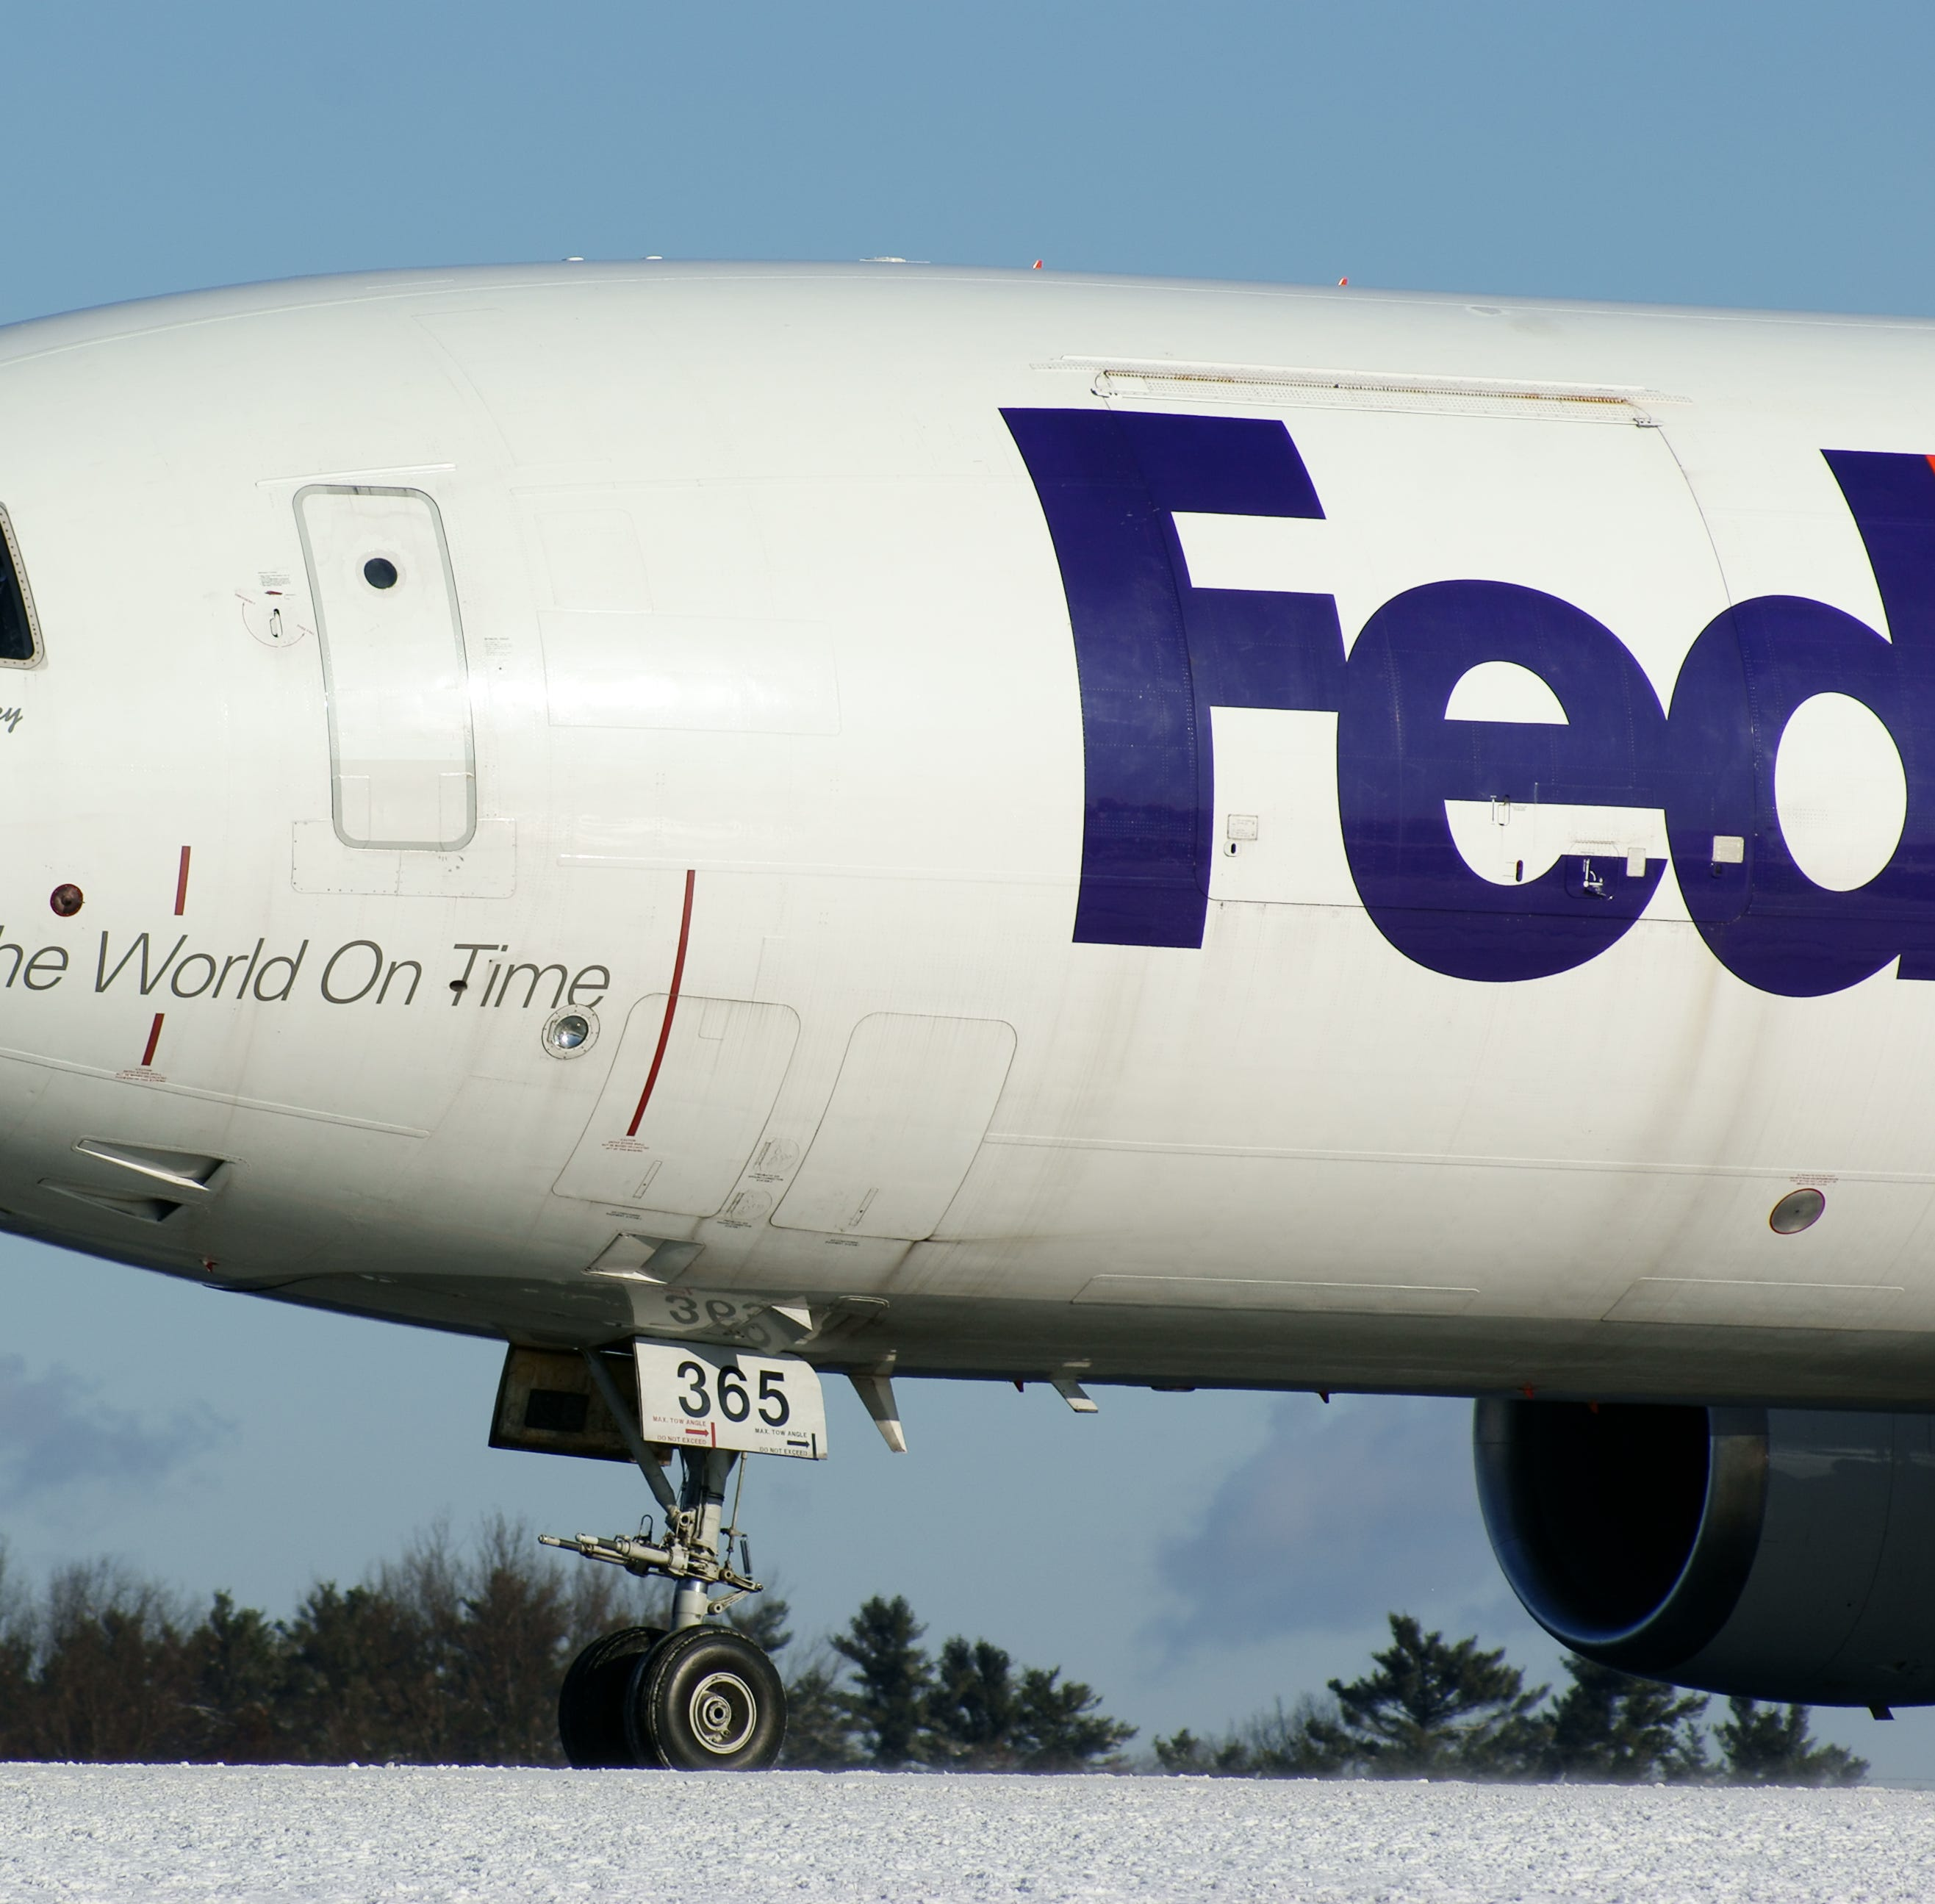 FedEx's 'Joey' retires after 91,000-plus flight hours as fleet modernization continues